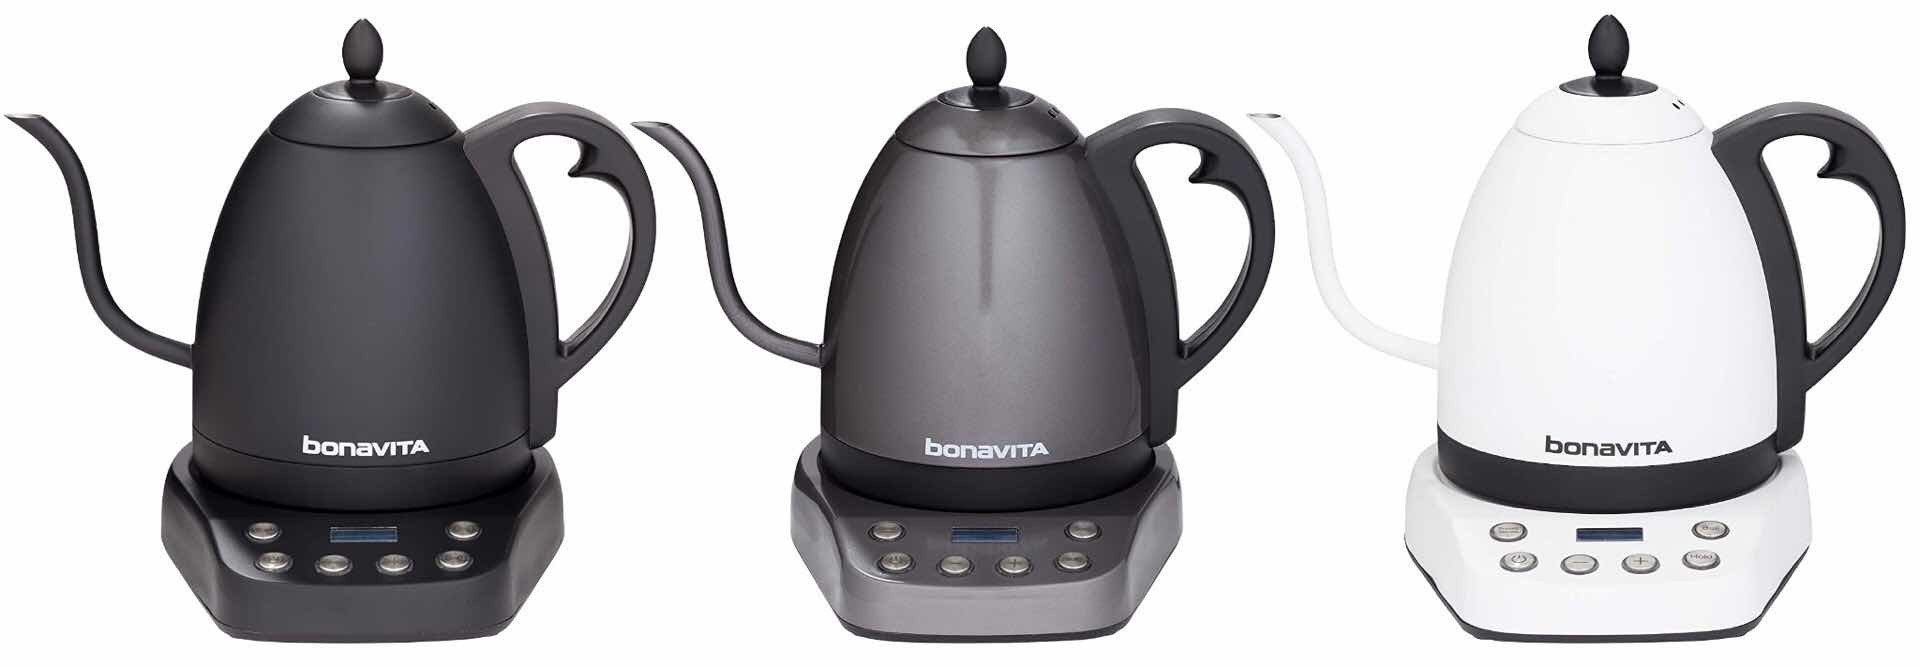 bonavita-interurban-painted-variable-temp-gooseneck-kettle-colors